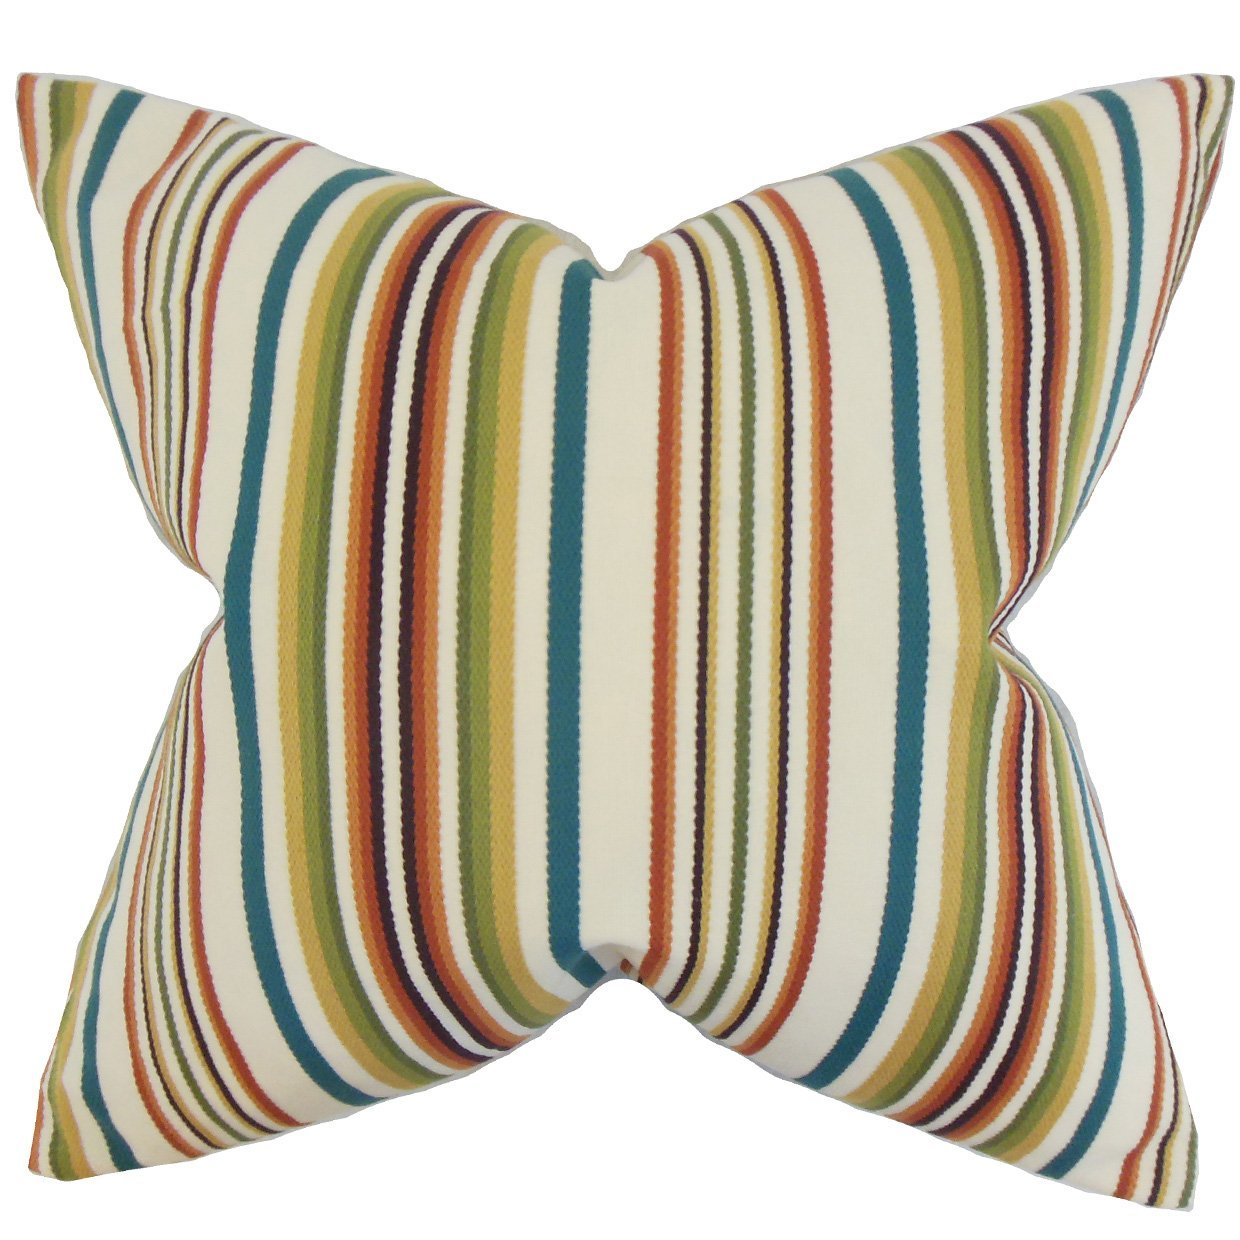 The Pillow Collection Magaidh Stripes Bedding Sham Multi European//26 x 26 Multicolor